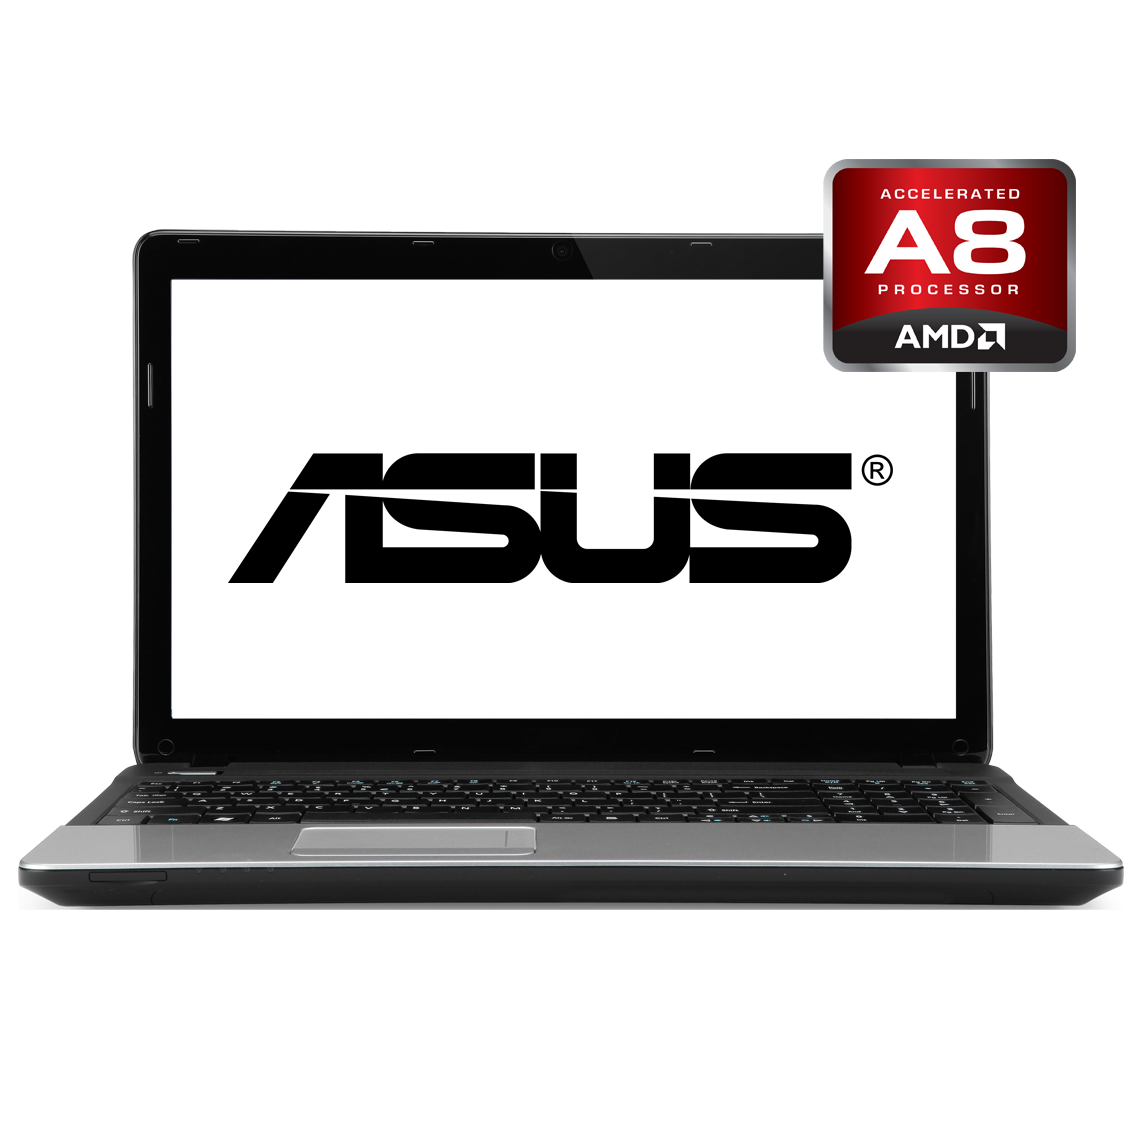 ASUS - 15 inch AMD A8